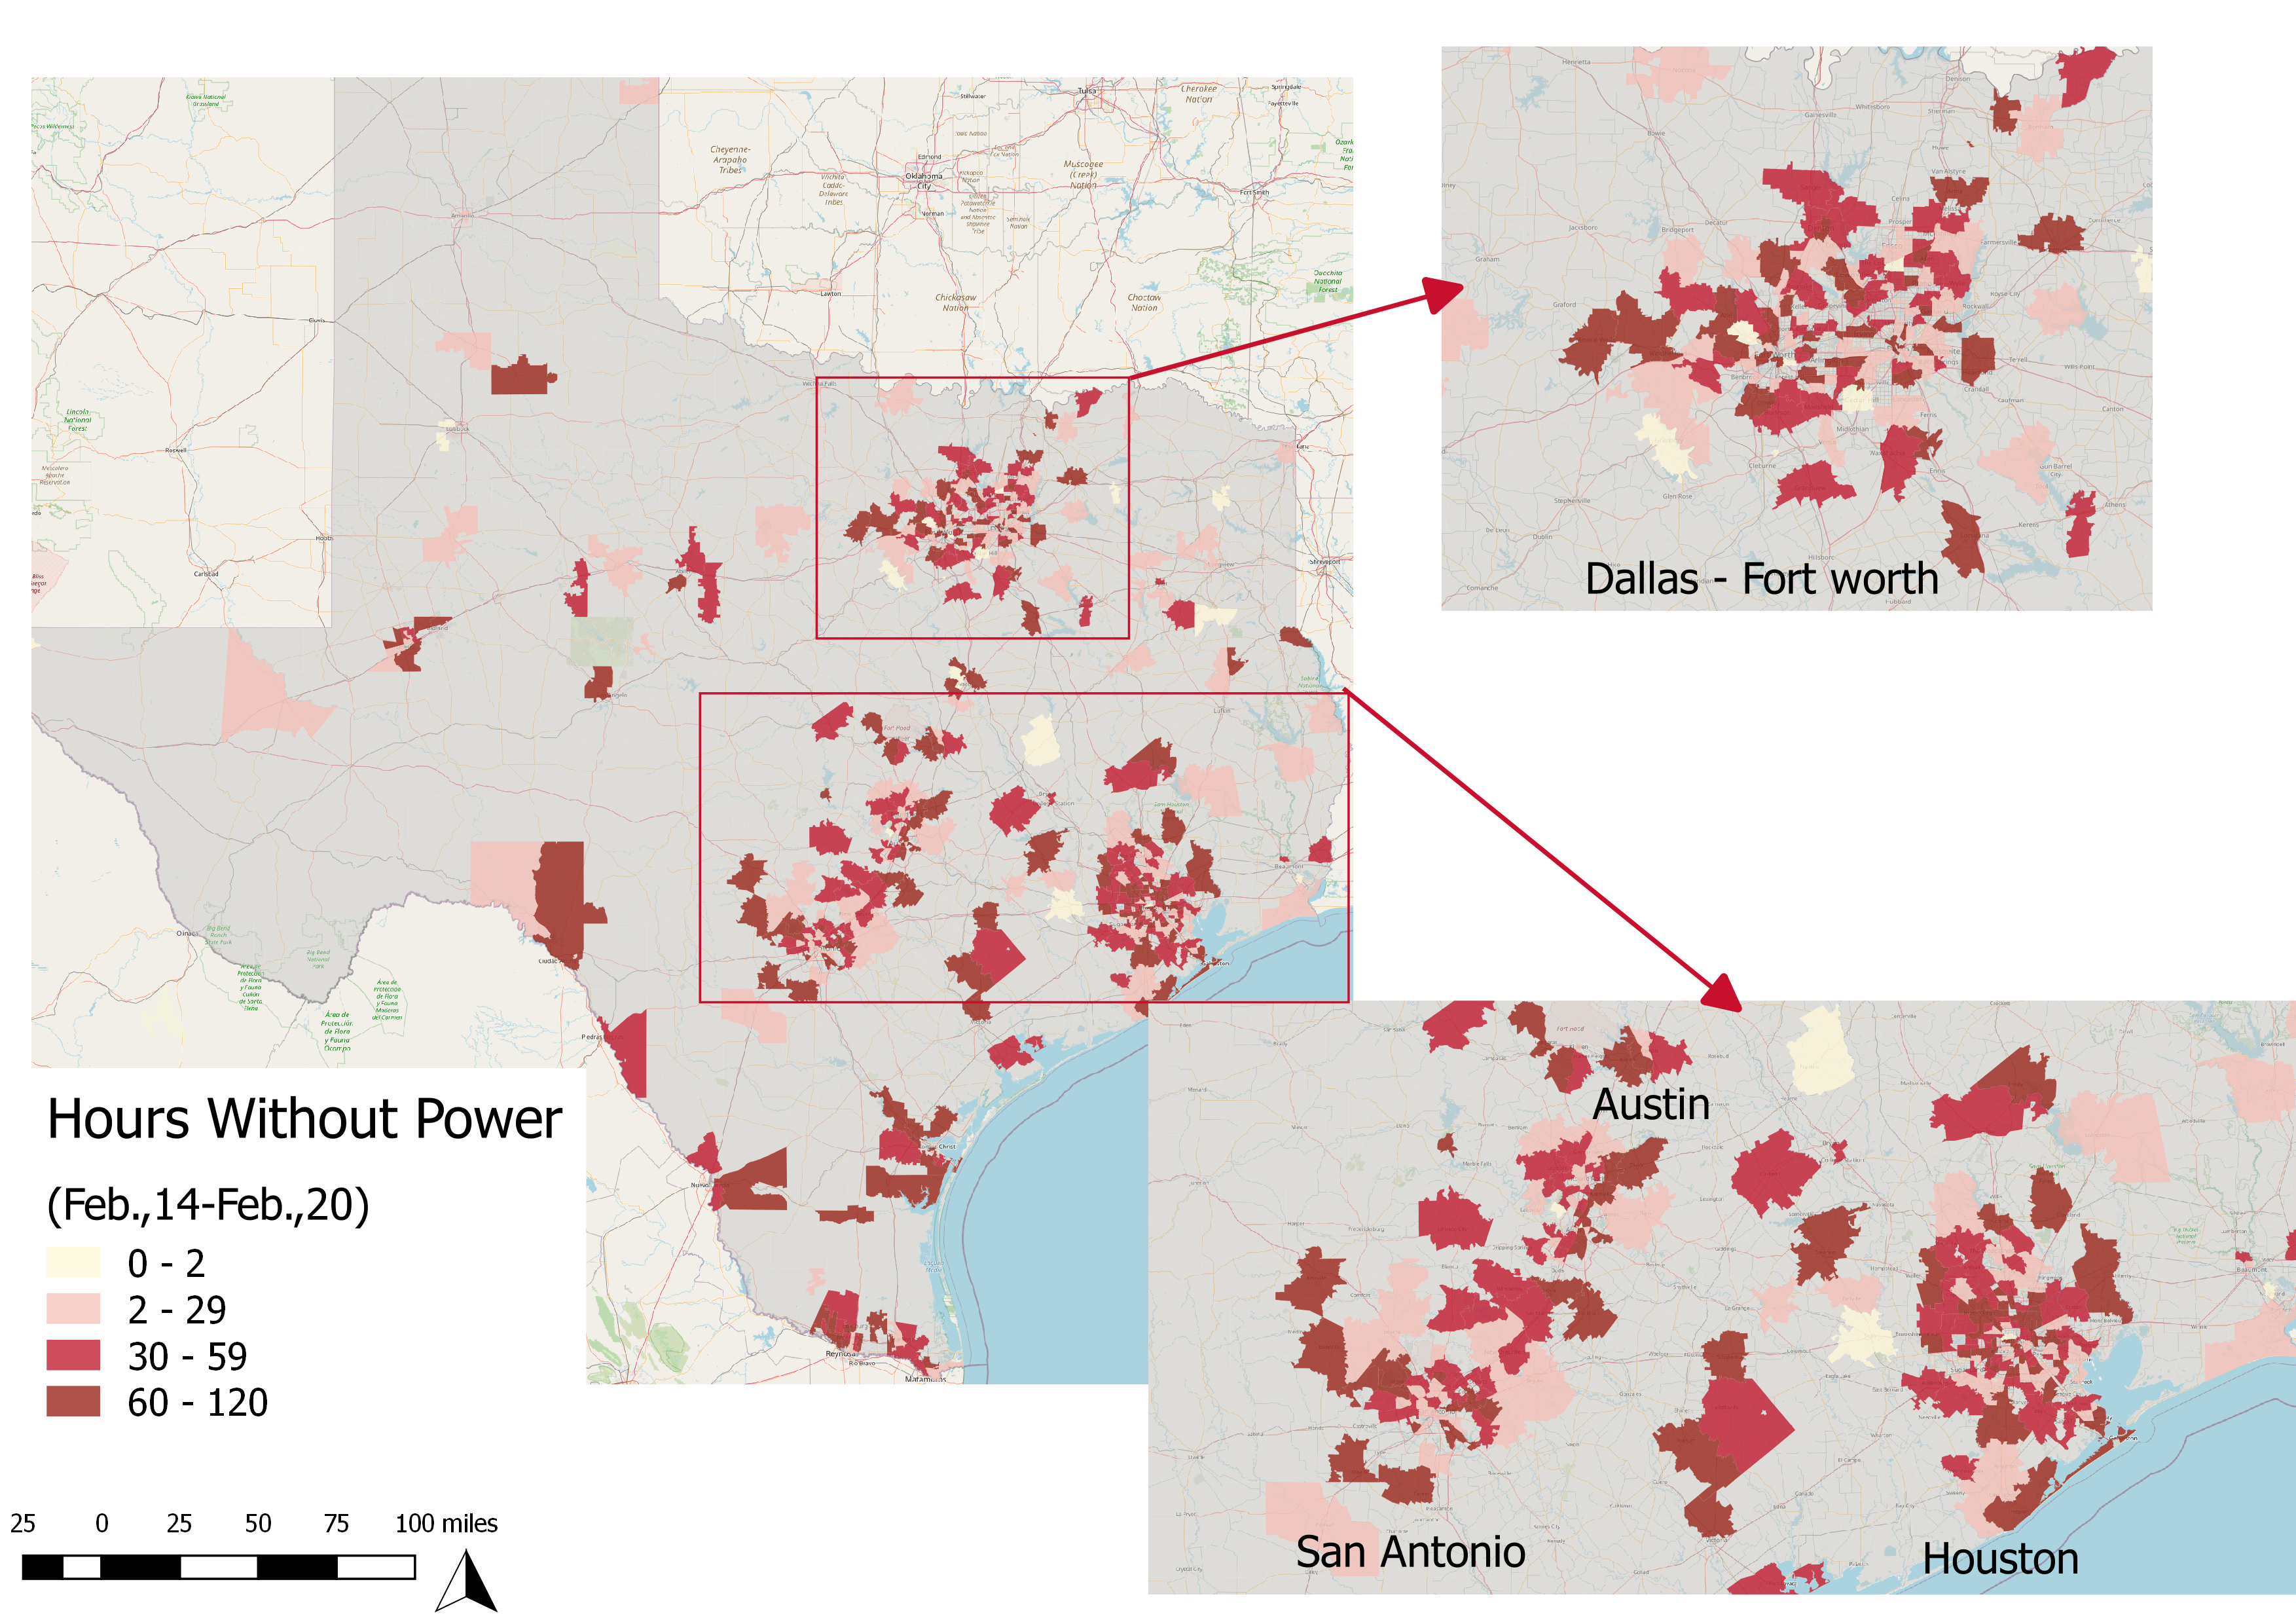 Image illustrating results for 'Two-thirds of respondents lost power' information